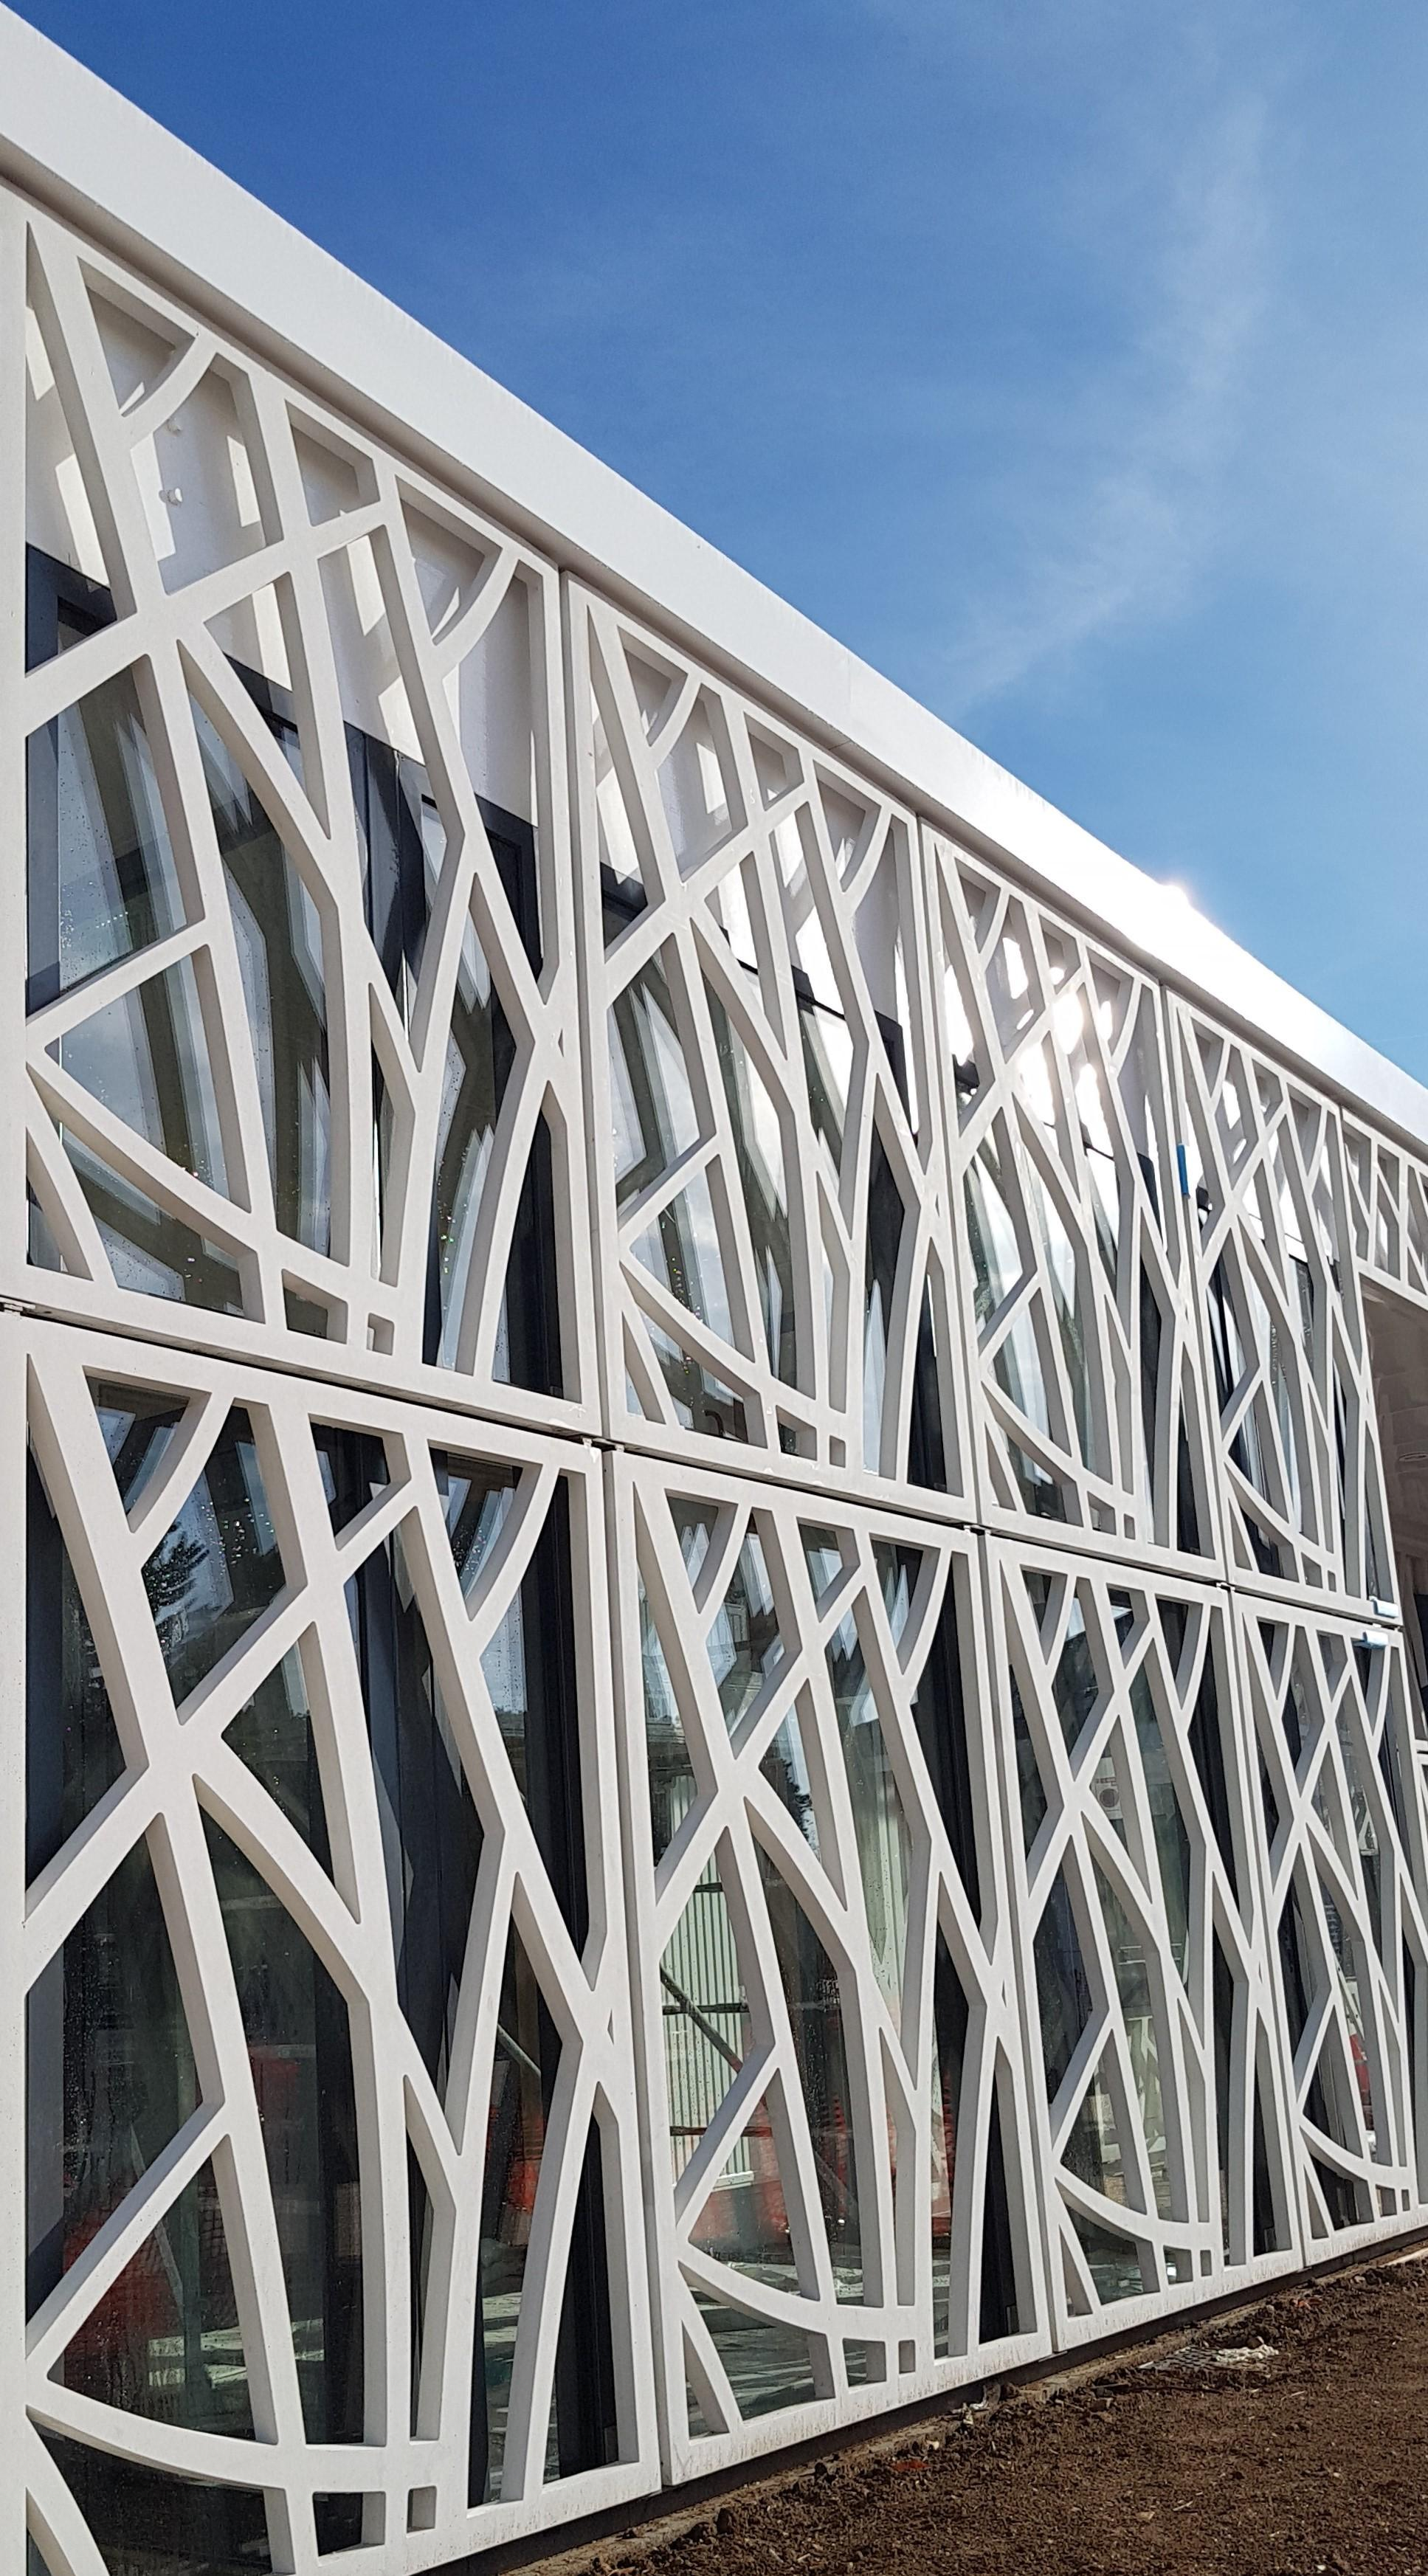 Perforated facade anchoring